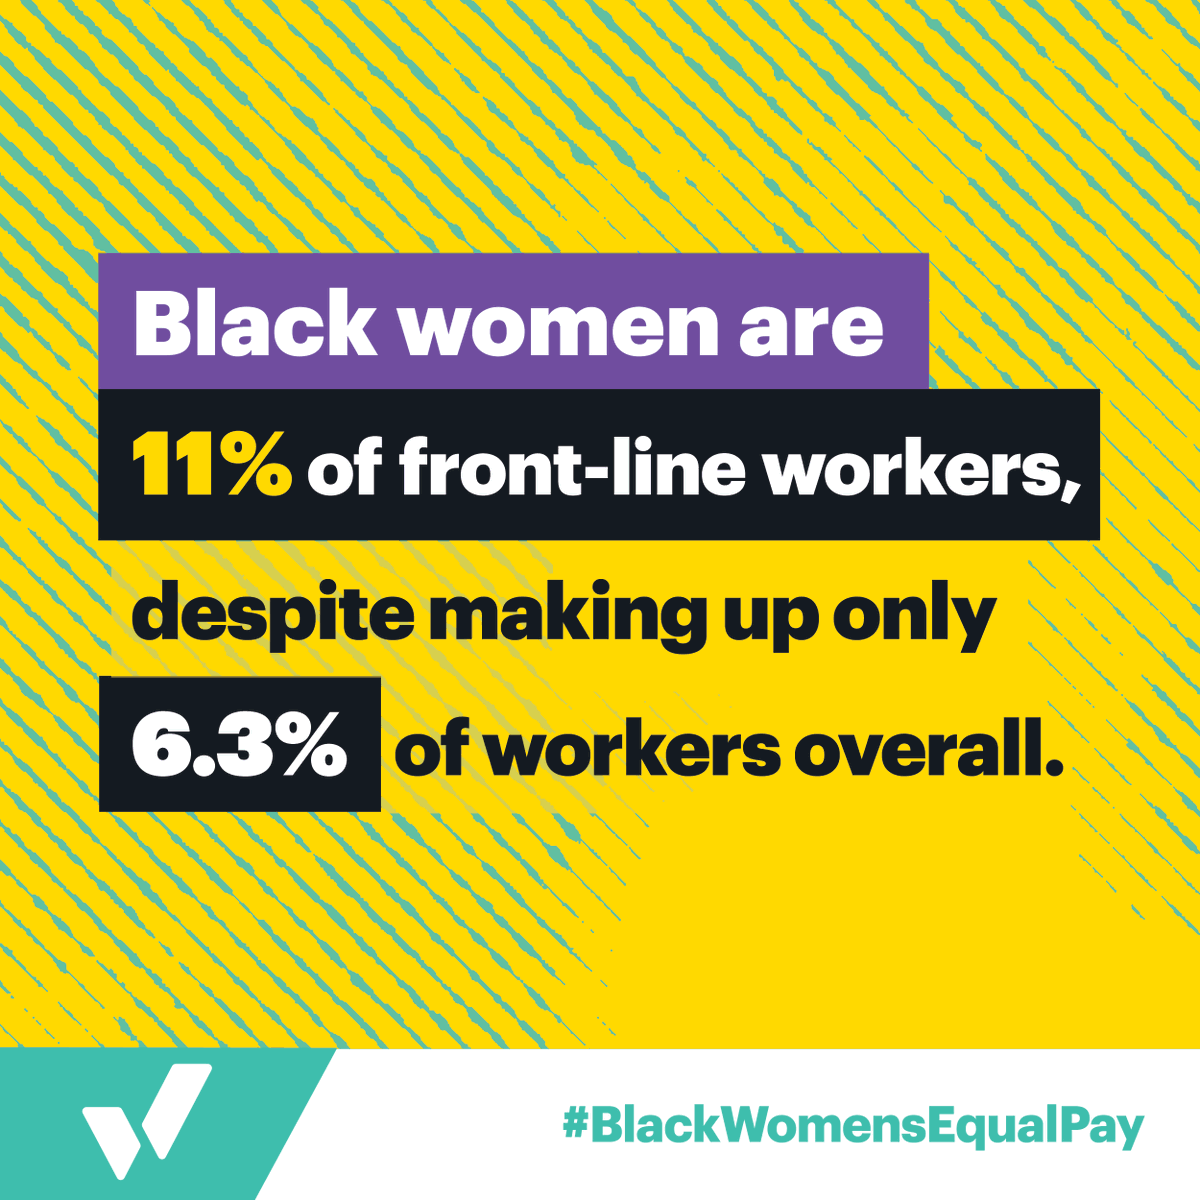 Women, people of color, and immigrants are over-represented, and under-compensated, in our essential workforce. Read our analysis here: https://t.co/5XRrpSkDos https://t.co/RjaI8h8Aft